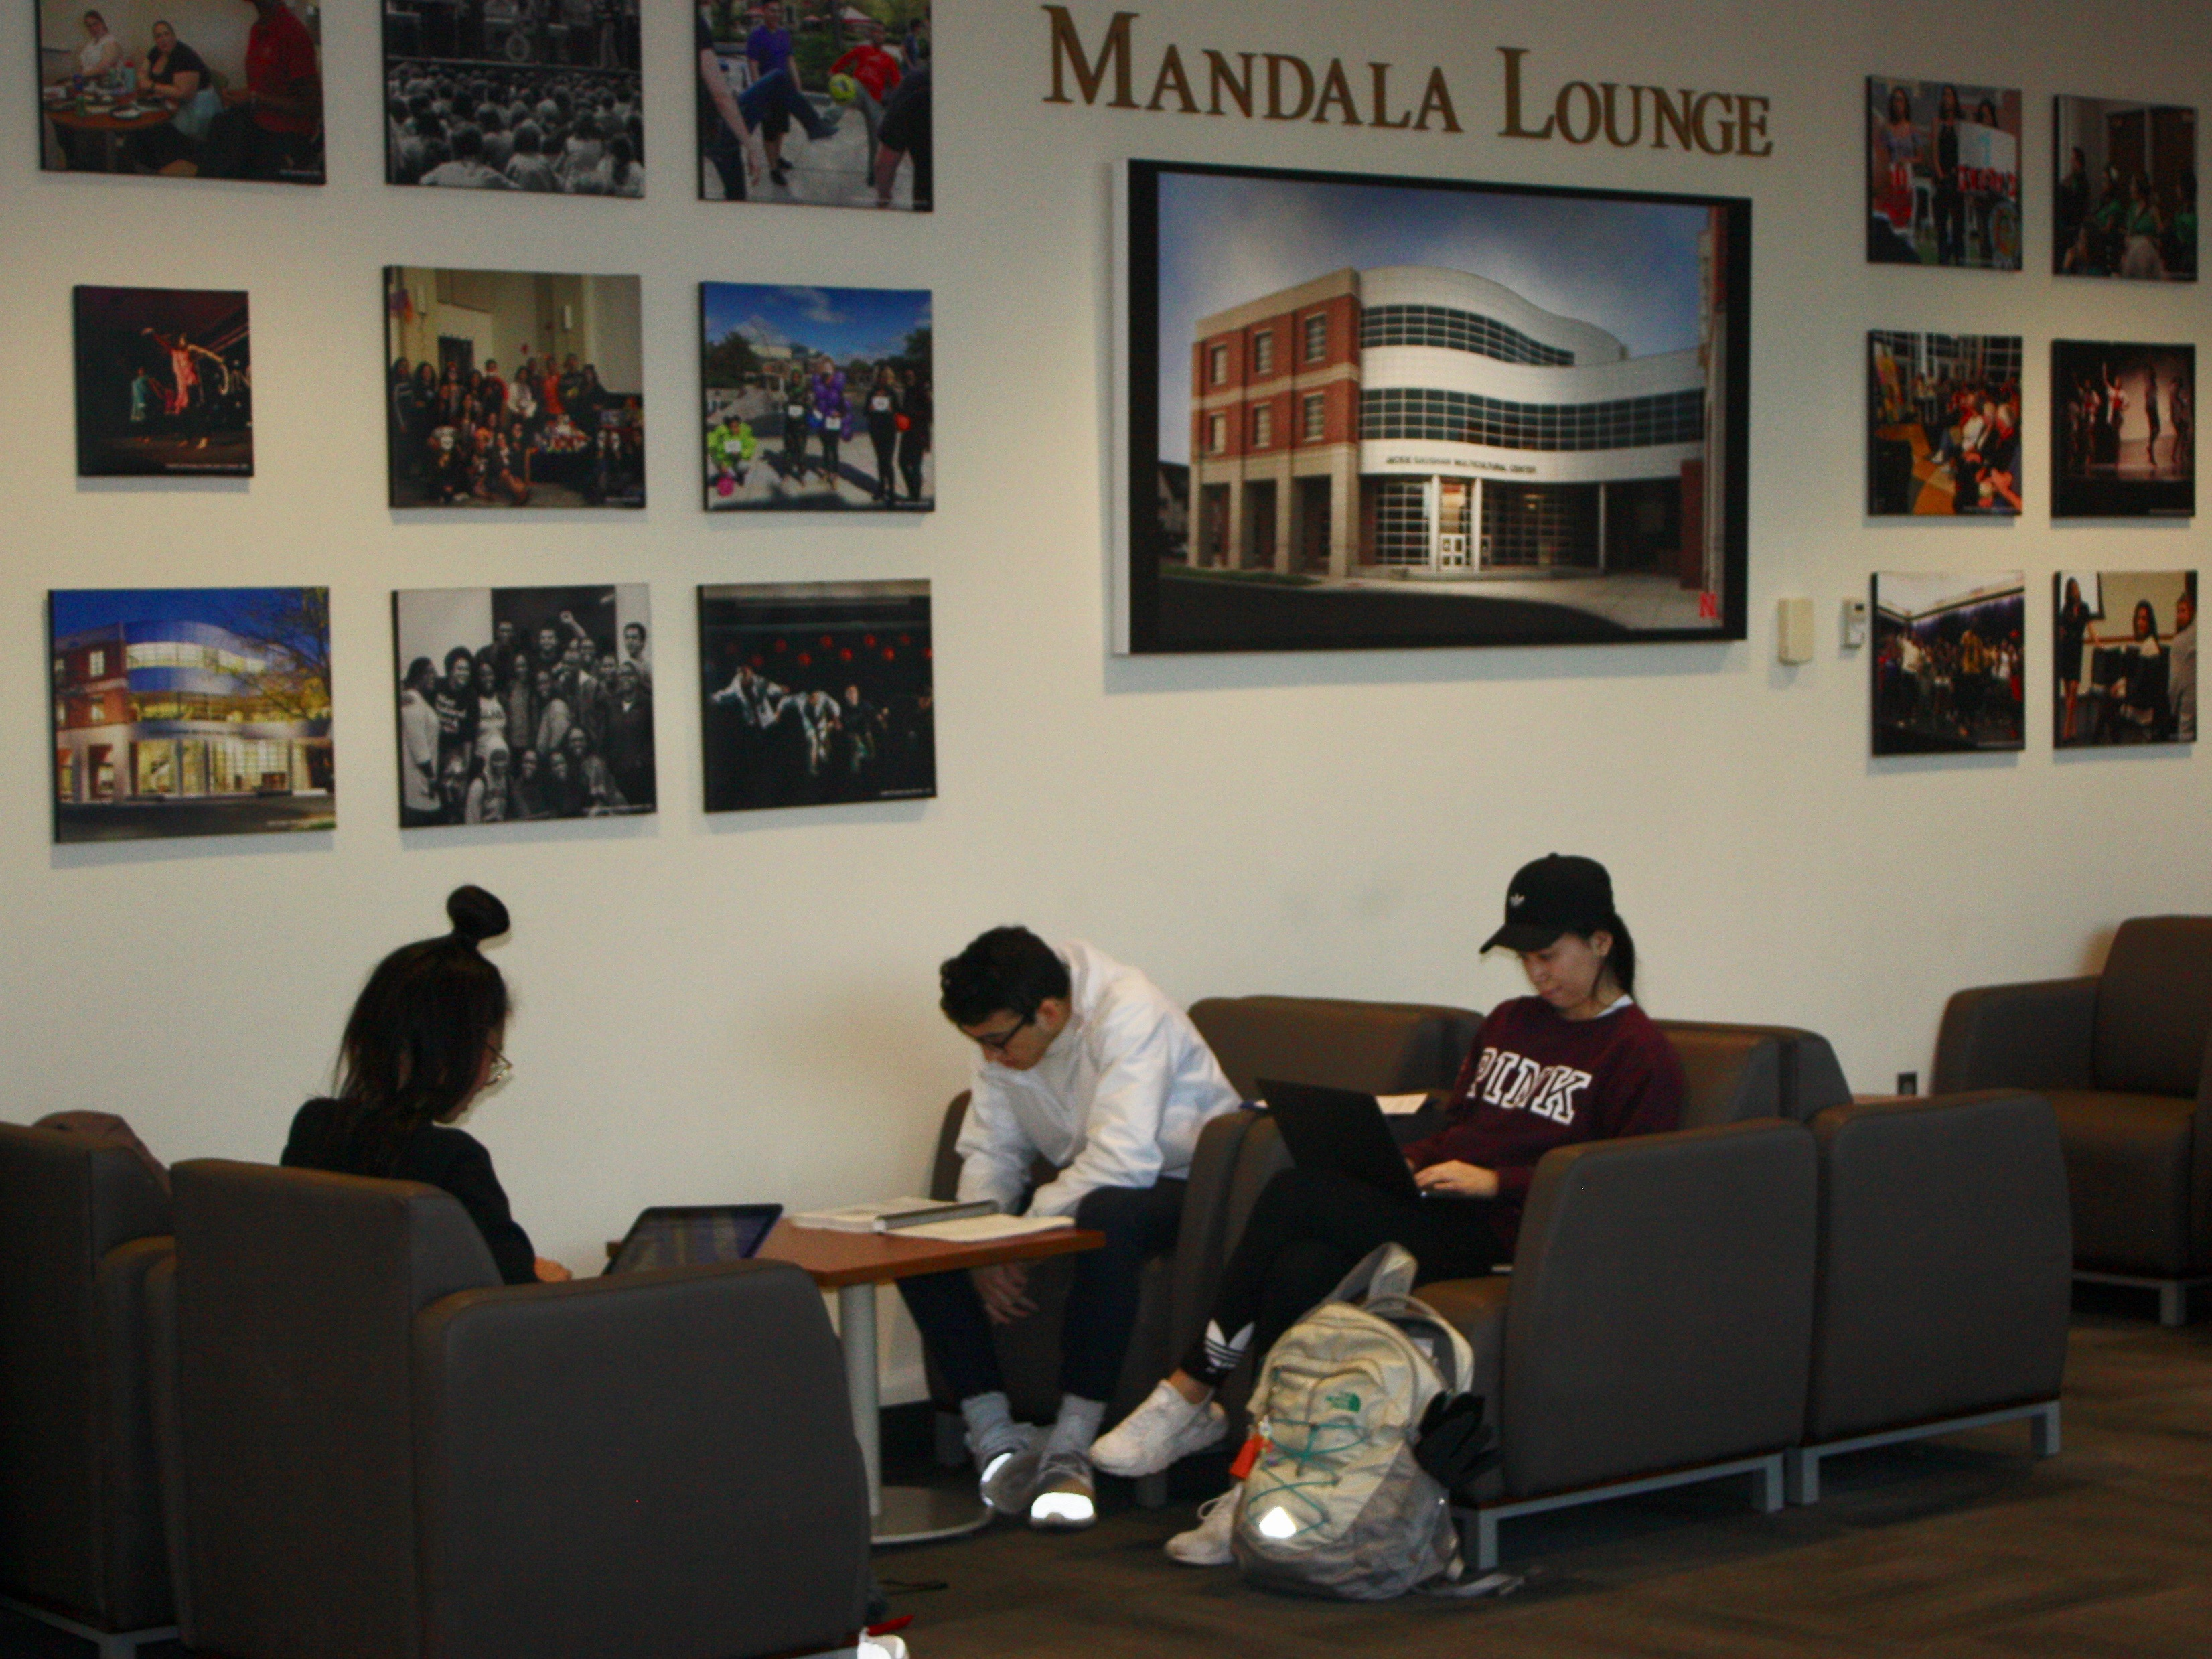 The Jackie Gaughan Multicultural Center will be open until midnight April 29 through May 3.